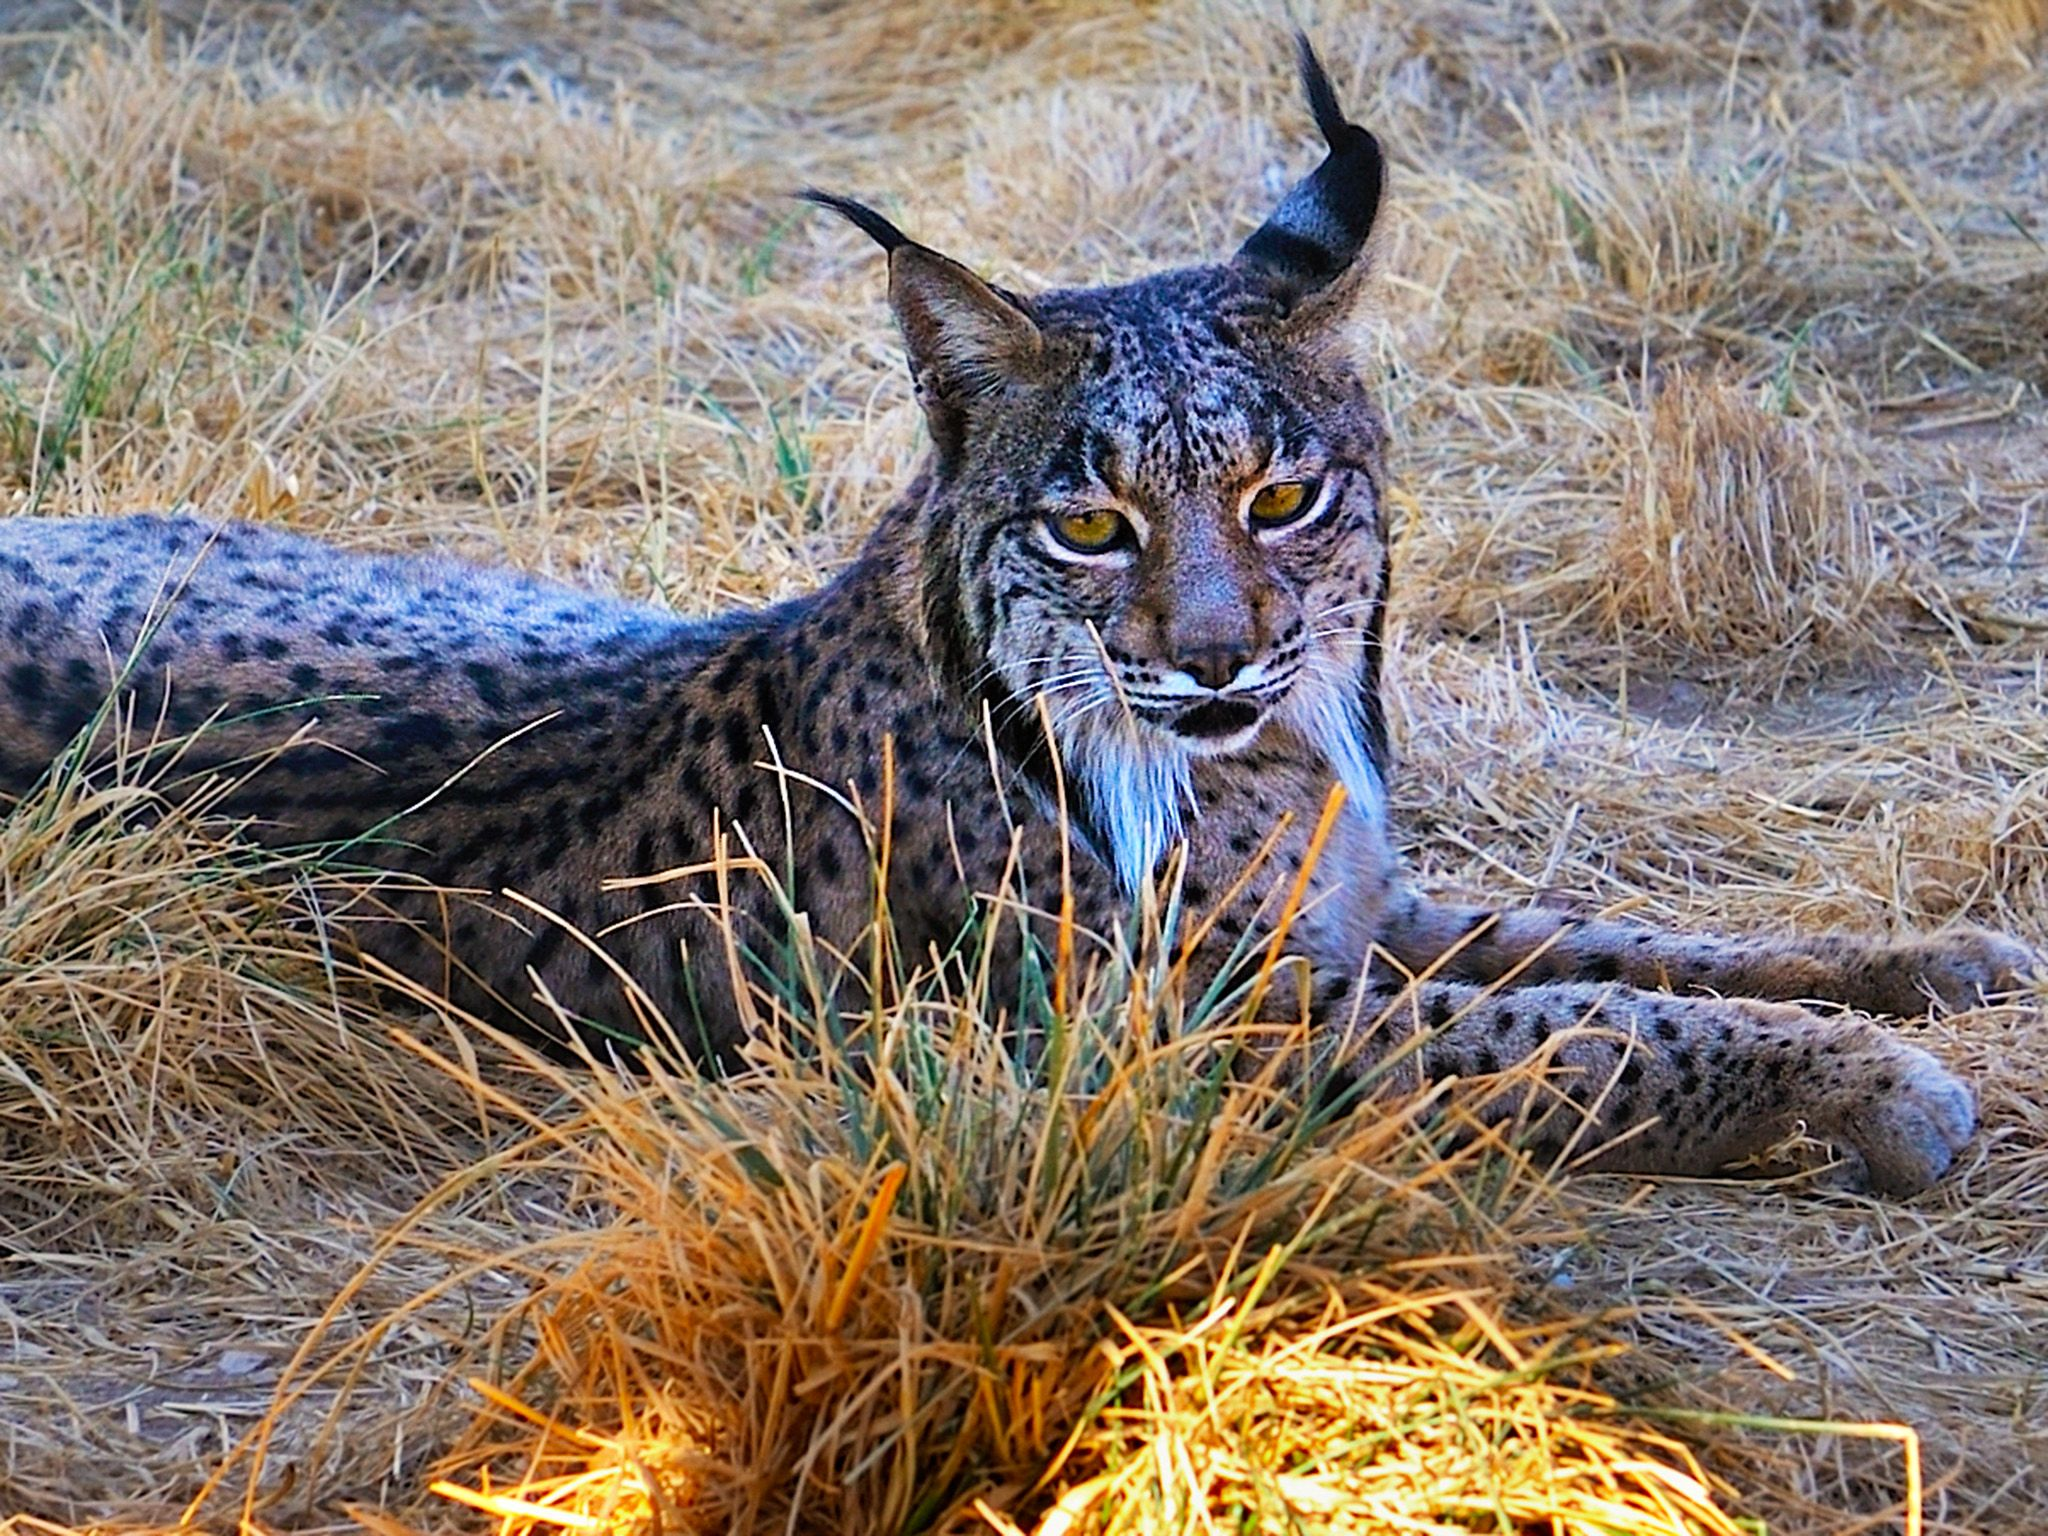 Iberian Lynx.  Encouraged and pushed by the EU's conservation policy, local authorities, scientis... [Photo of the day - February 2015]